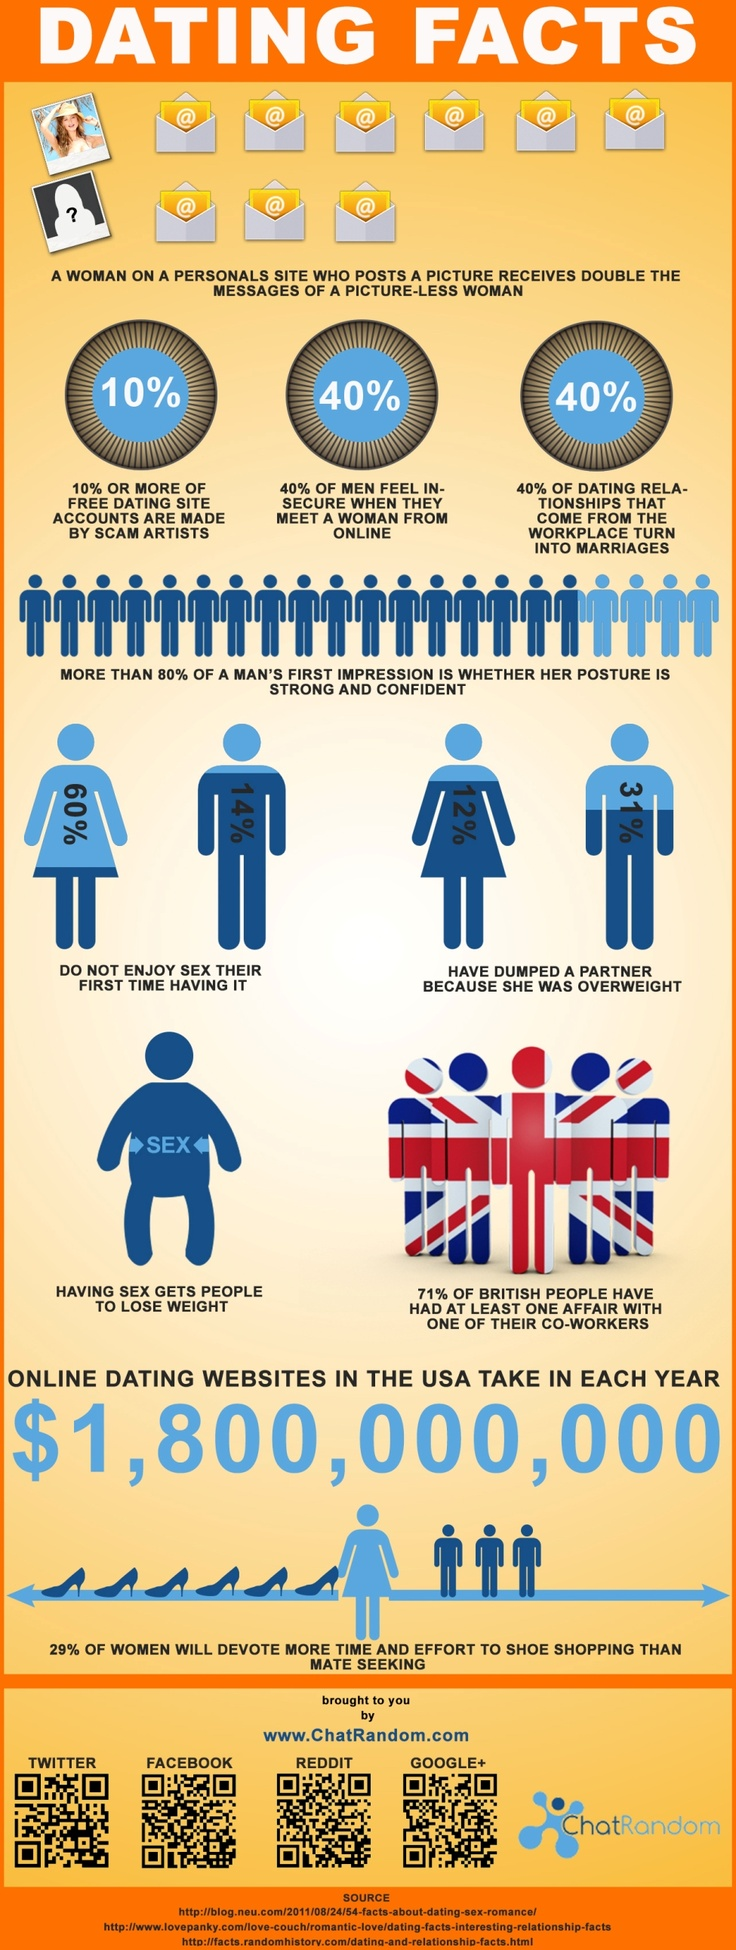 facts about online dating | Pew Research Center